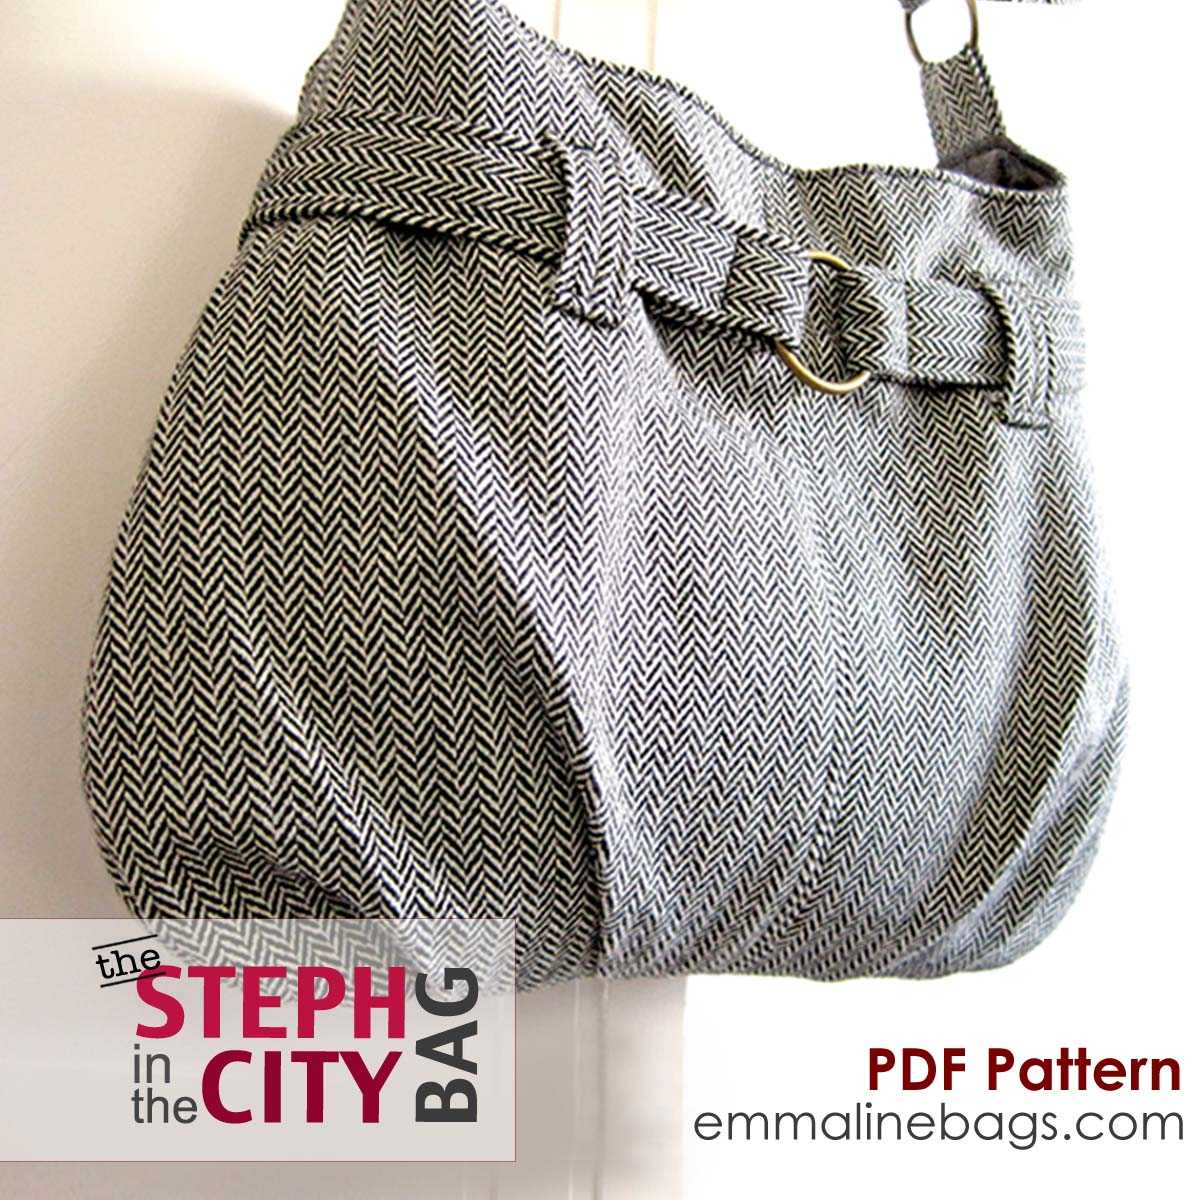 Patterns For Bags : Bags: Sewing Patterns and Purse Supplies: A New Sewing Pattern ...